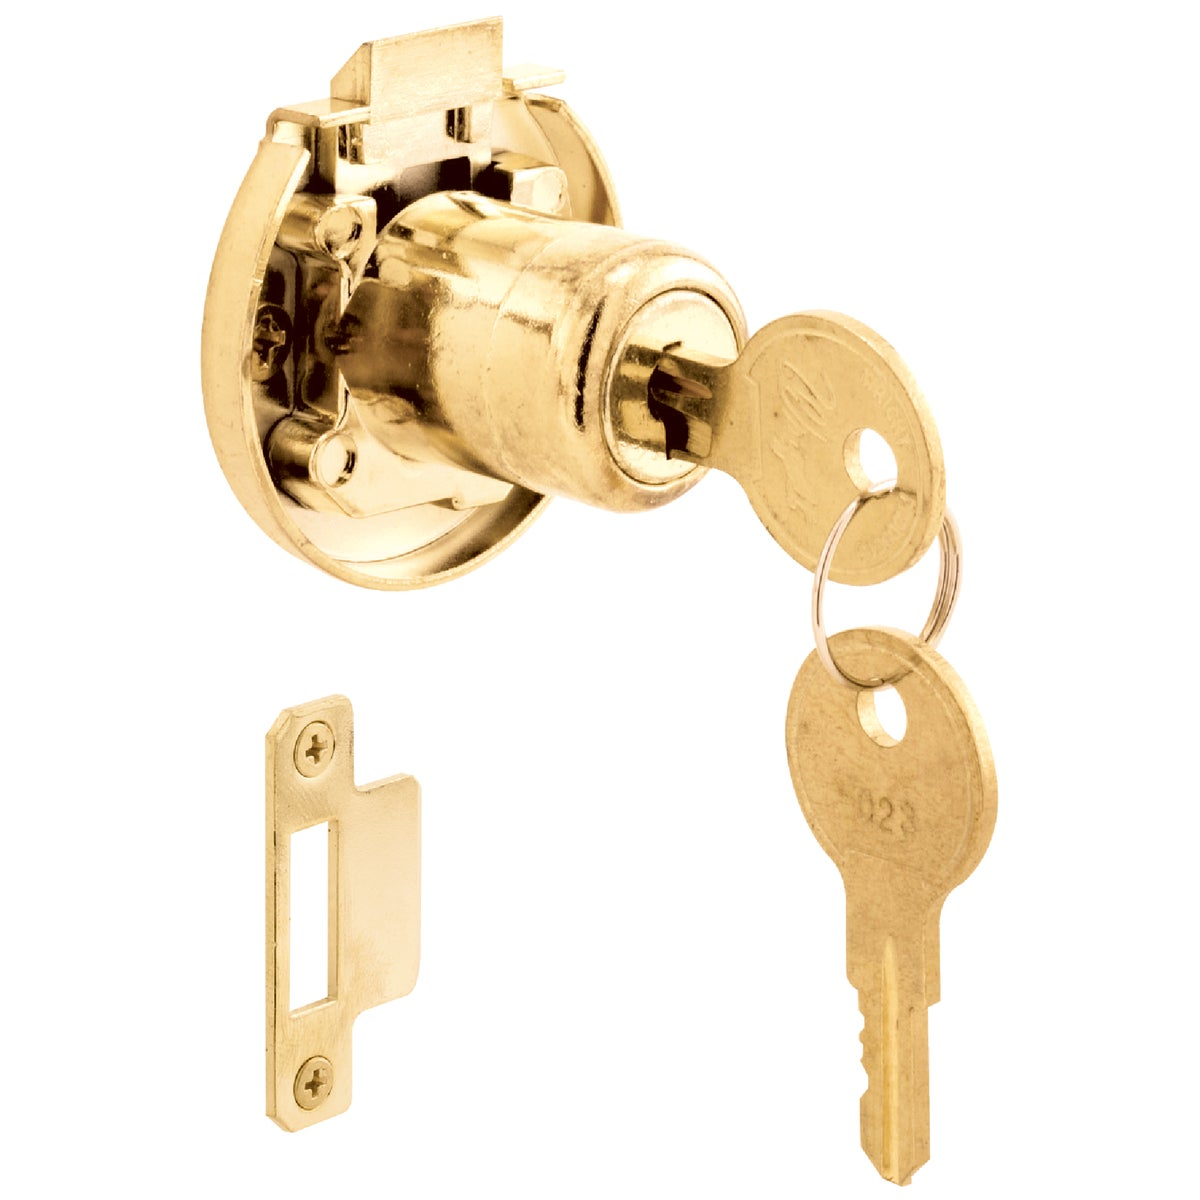 SELF-LOCKNG CABINET LOCK - U 10667 by Prime Line Products